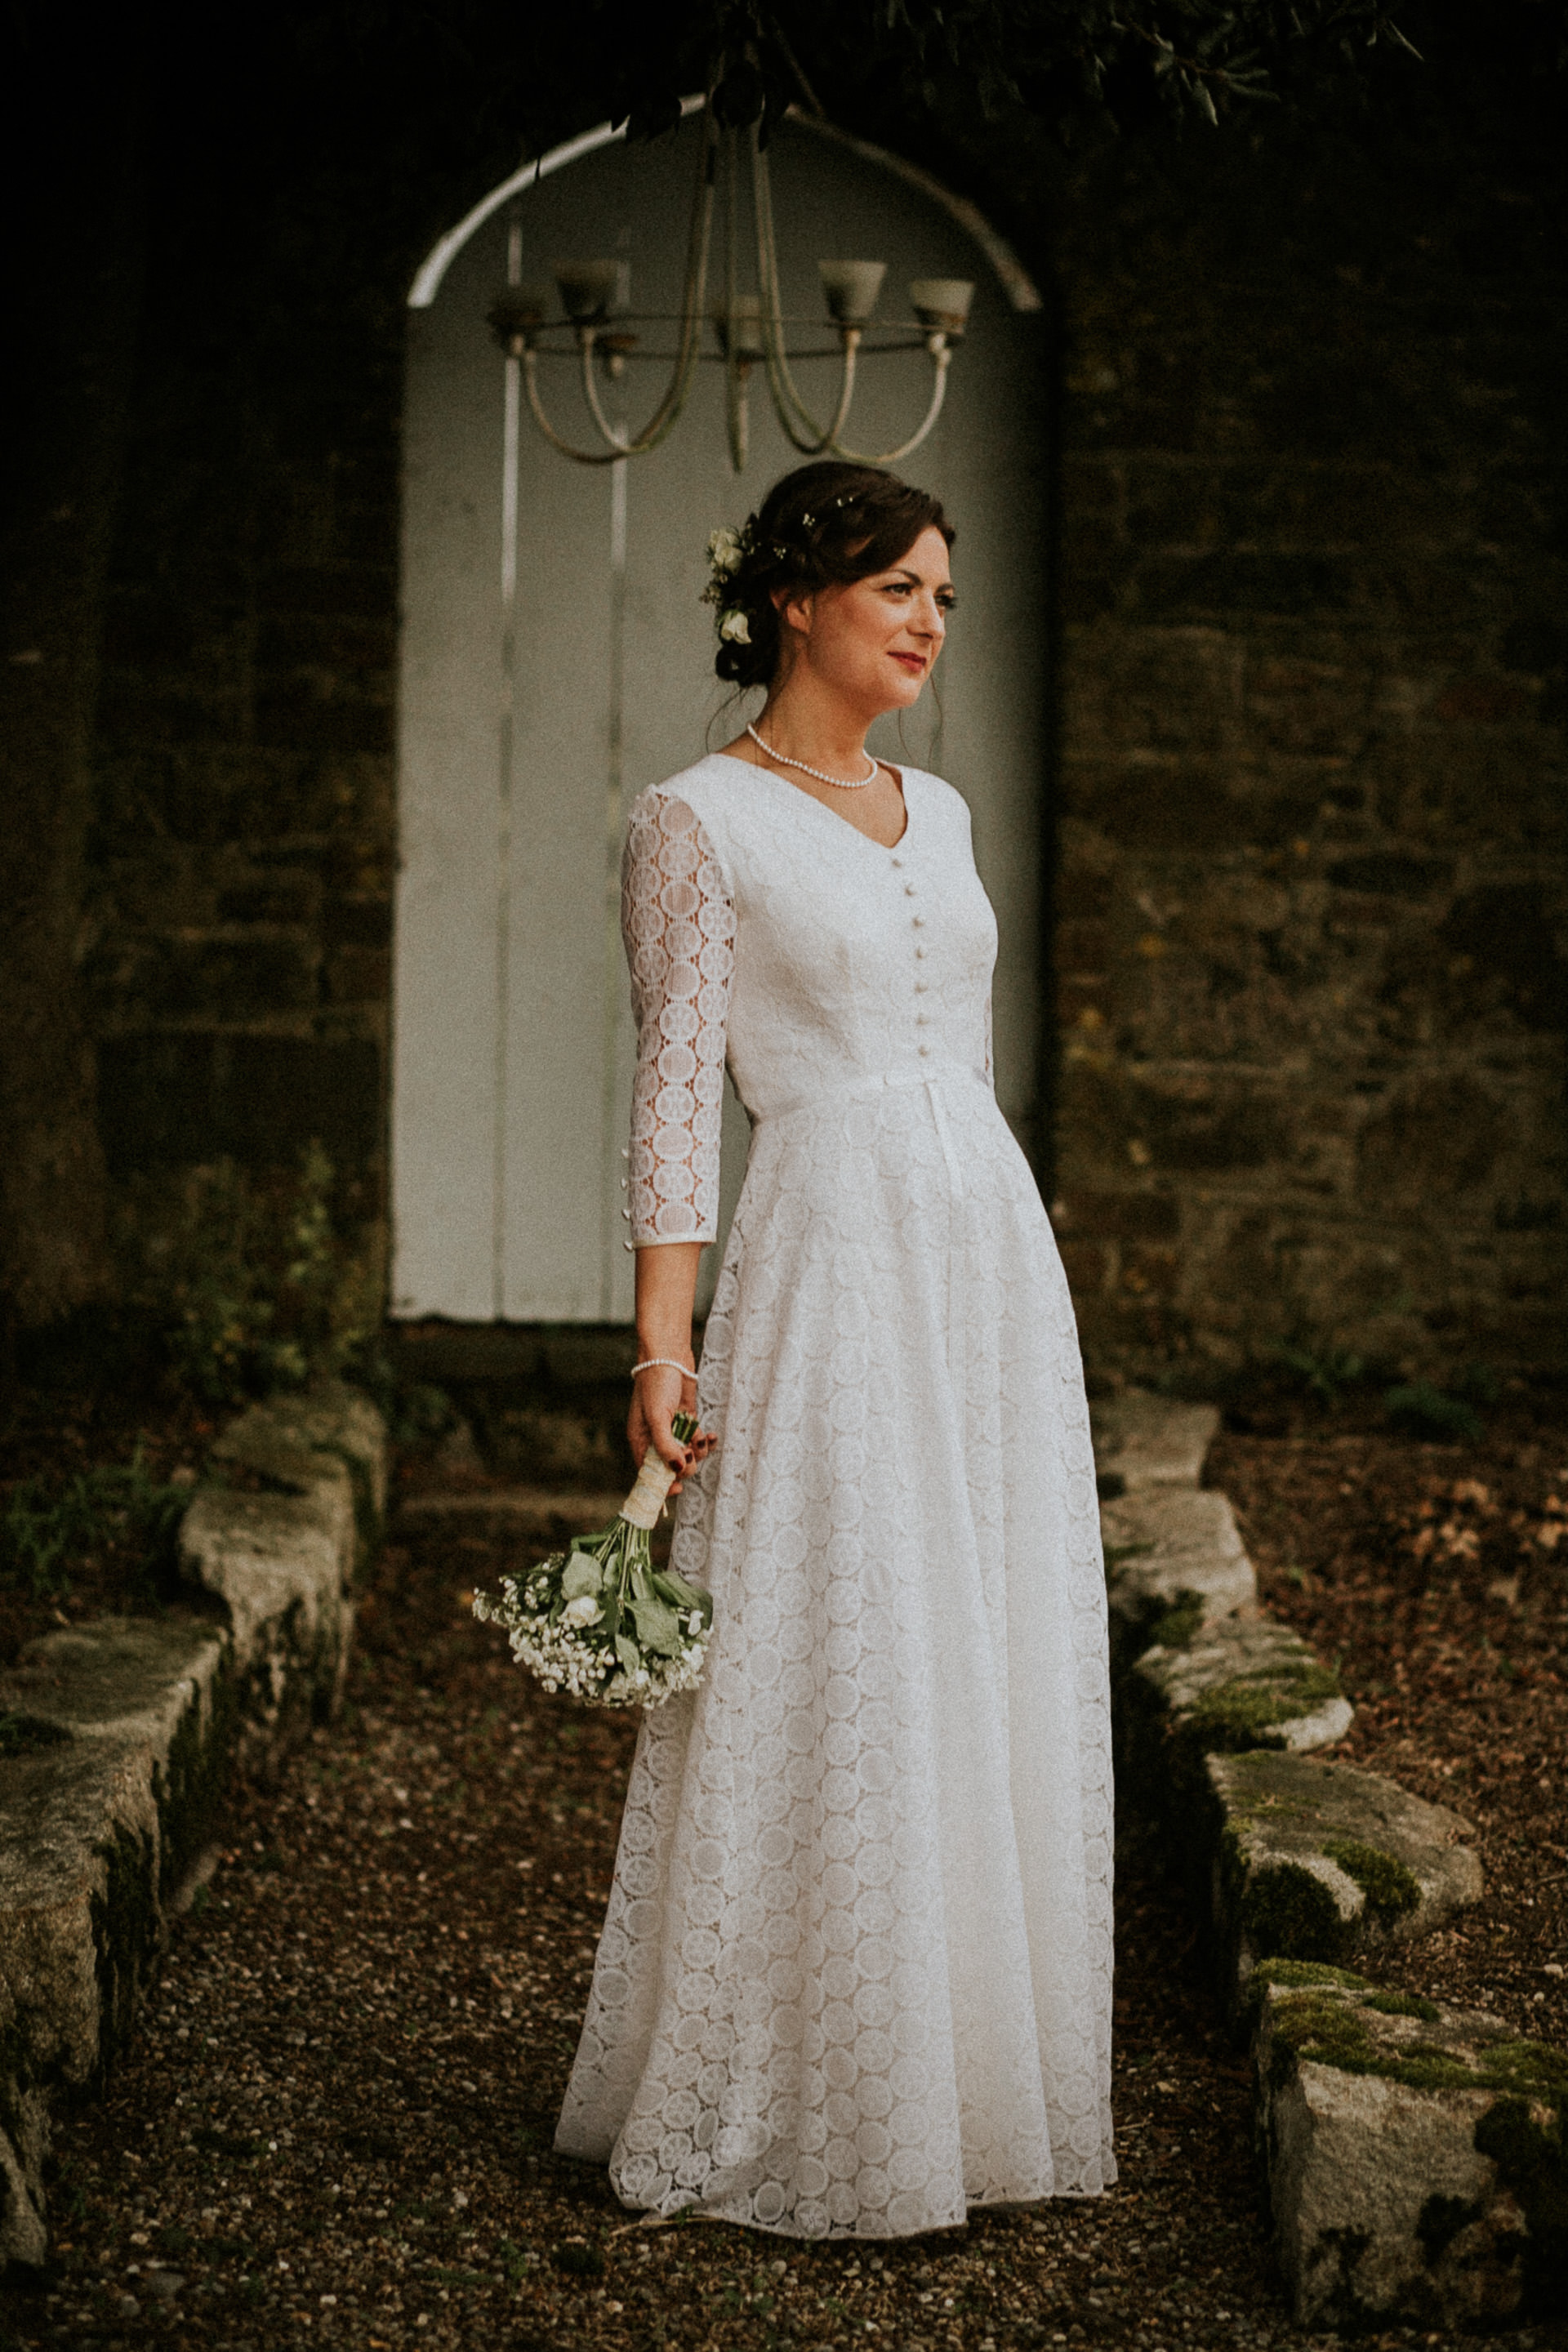 Bridal Portrait at Horetown House, Wexford